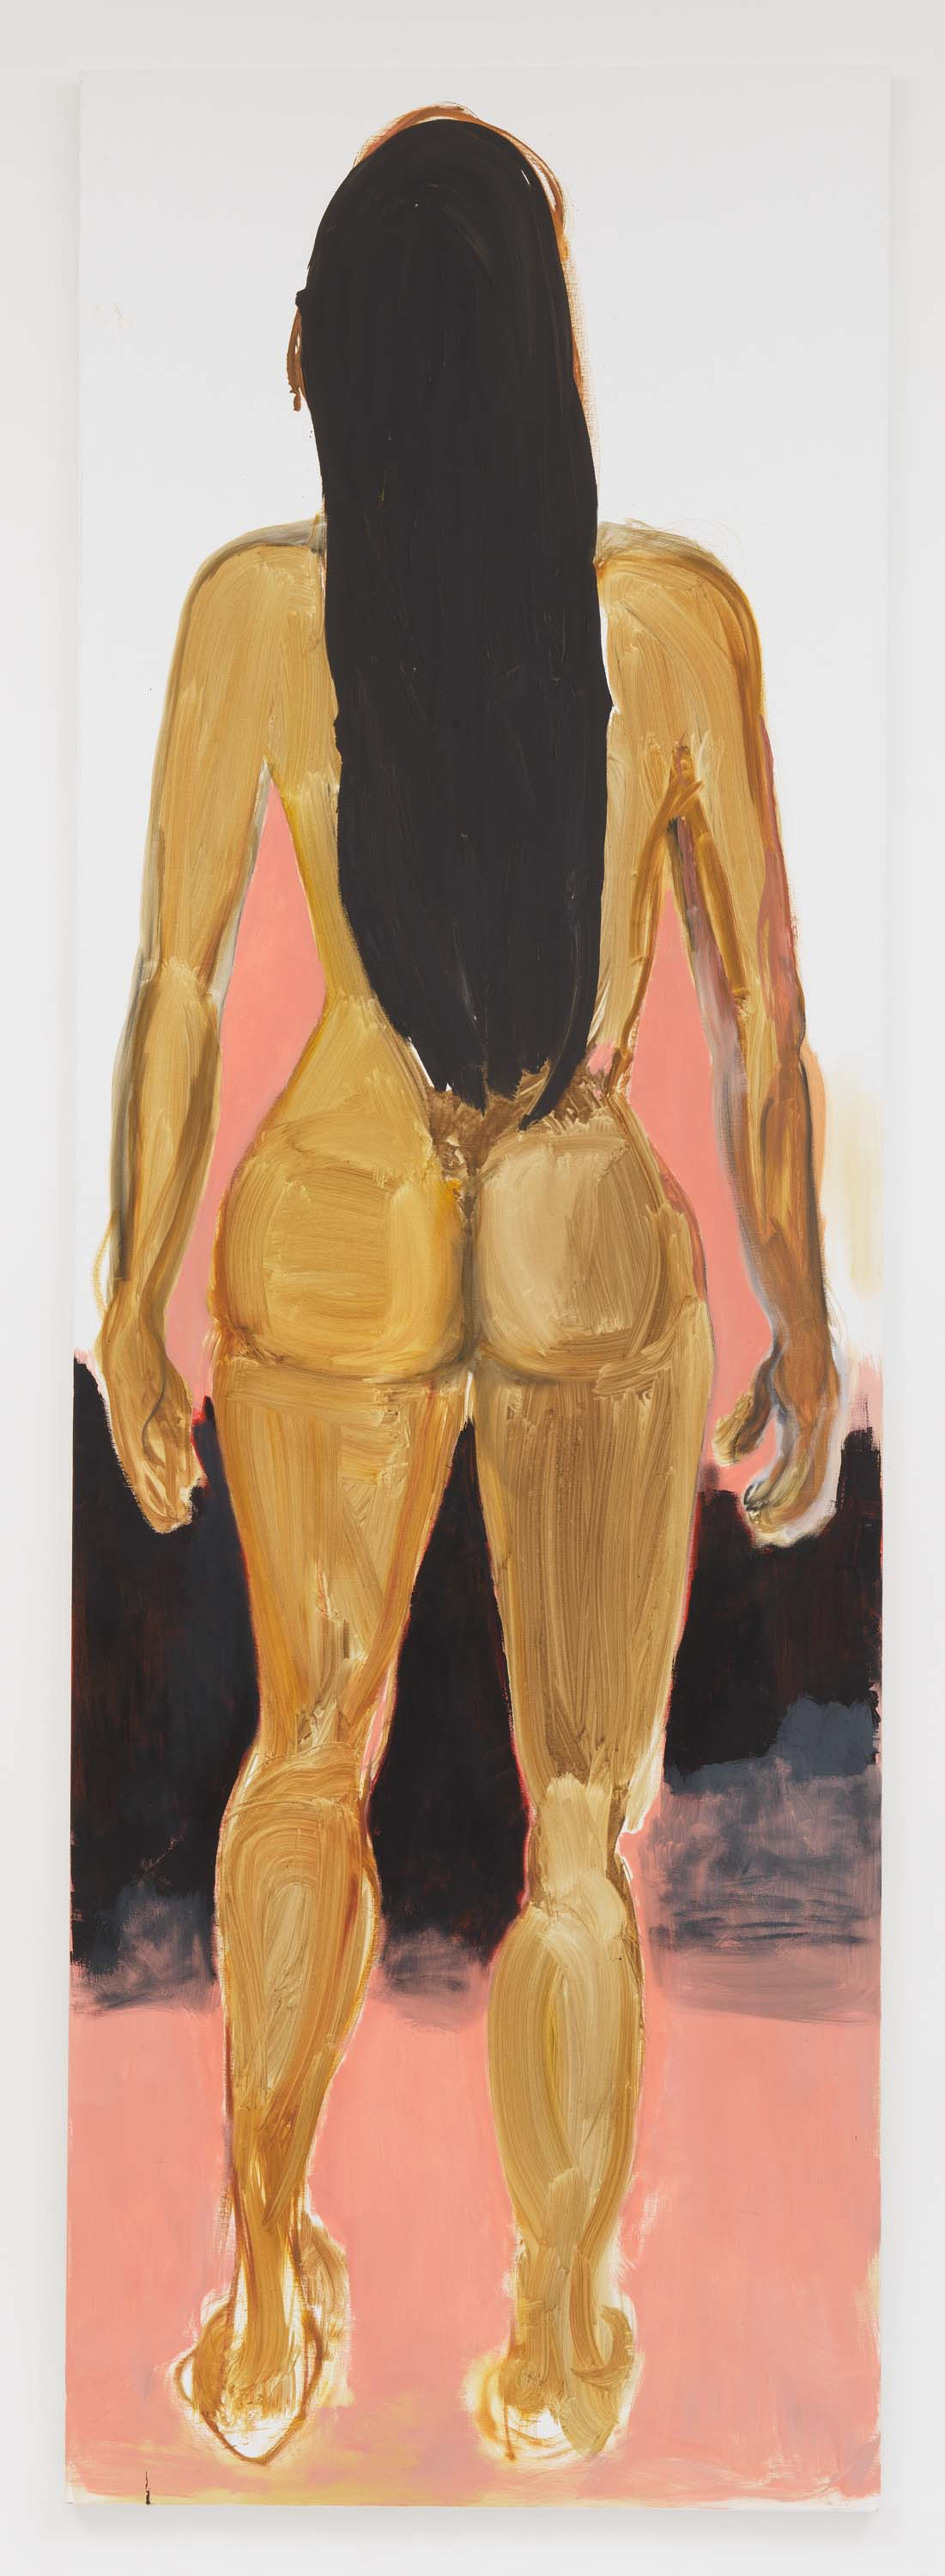 "Marlene Dumas, 2017, Oil on canvas 118 1/8 x 39 3/8 inches 300 x 100 cm. Exposition ""Myths & Mortals"", Galerie David Zwirner, New-York"